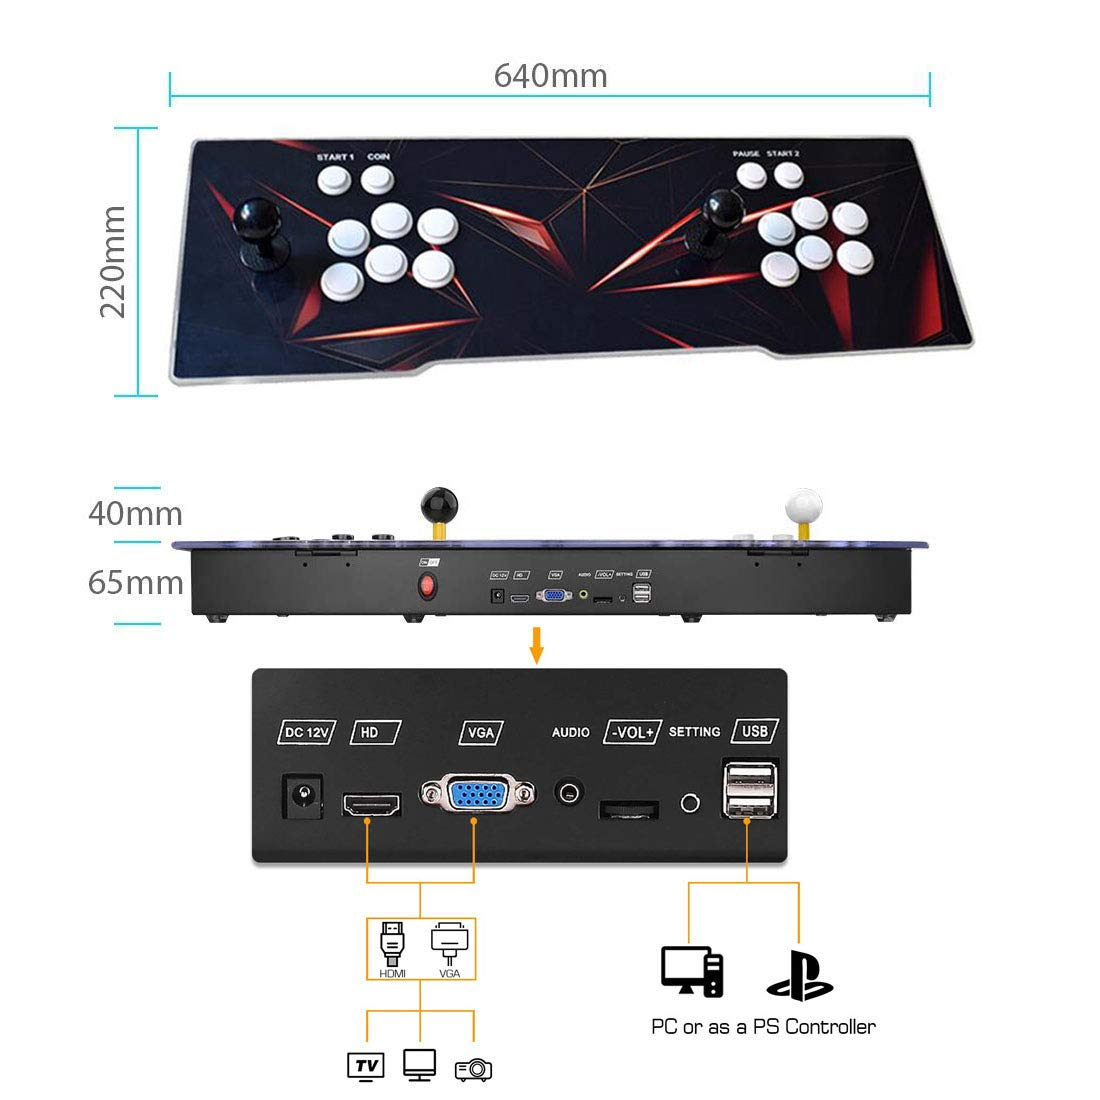 MYMIQEY 3D Pandora Key 7 Arcade Game Console | 2177 Retro HD Games | Add More Games | Full HD (1920x1080) Video | Support Multiplayer Online | 2 Player Game Controls | HDMI/VGA/USB/AUX Audio Output by MYMIQEY (Image #6)